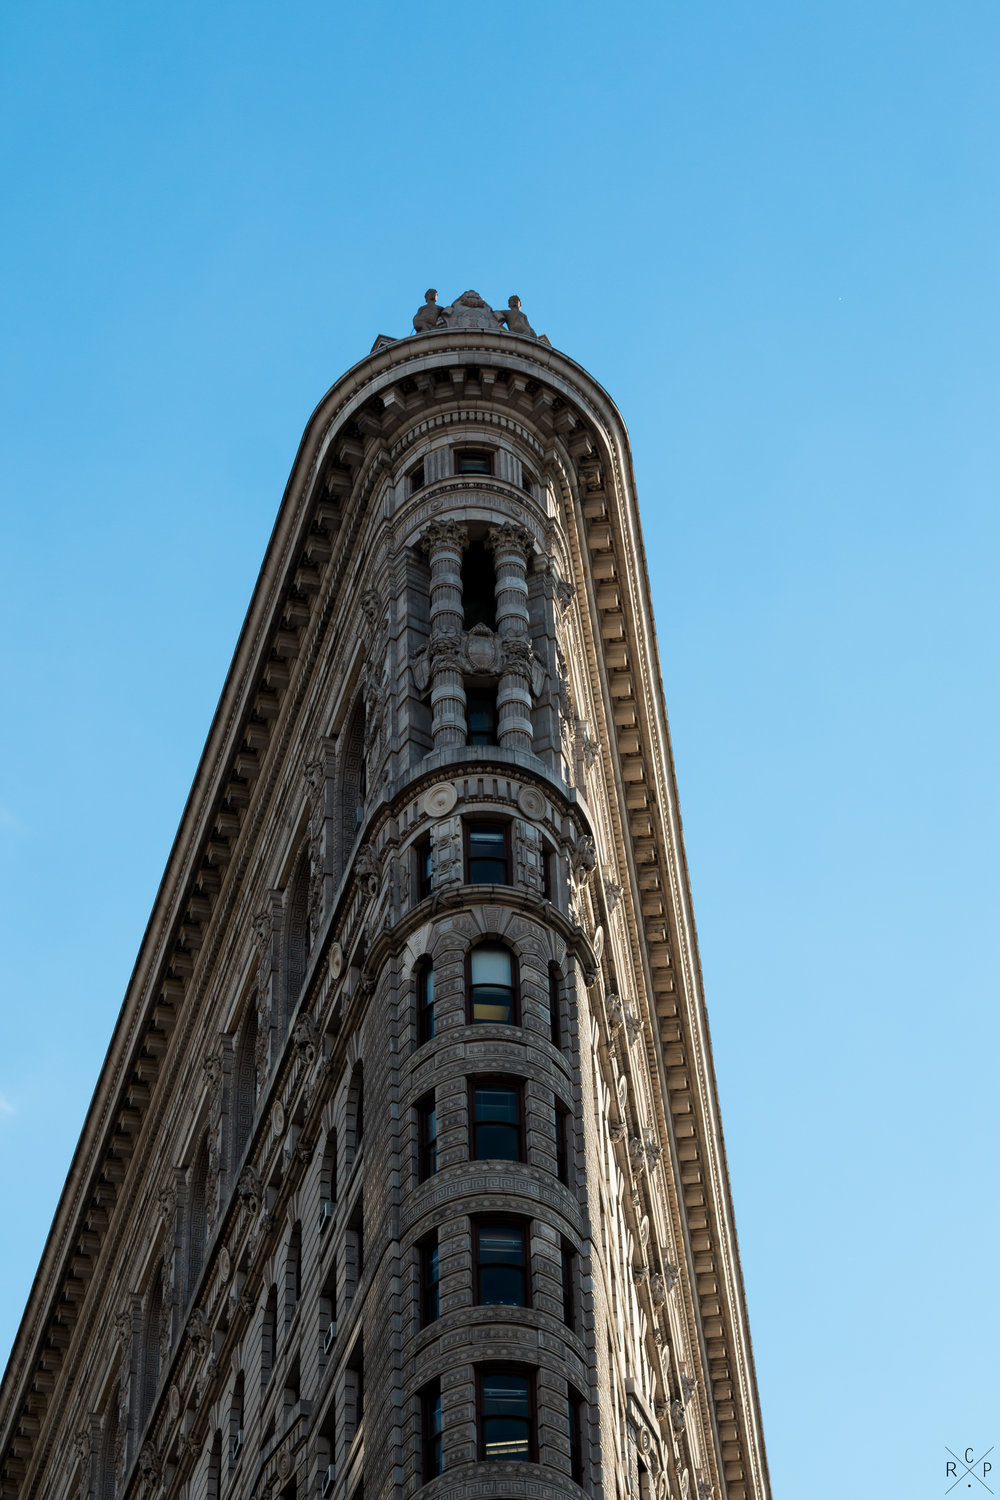 Flatiron - New York, USA 16/02/2017